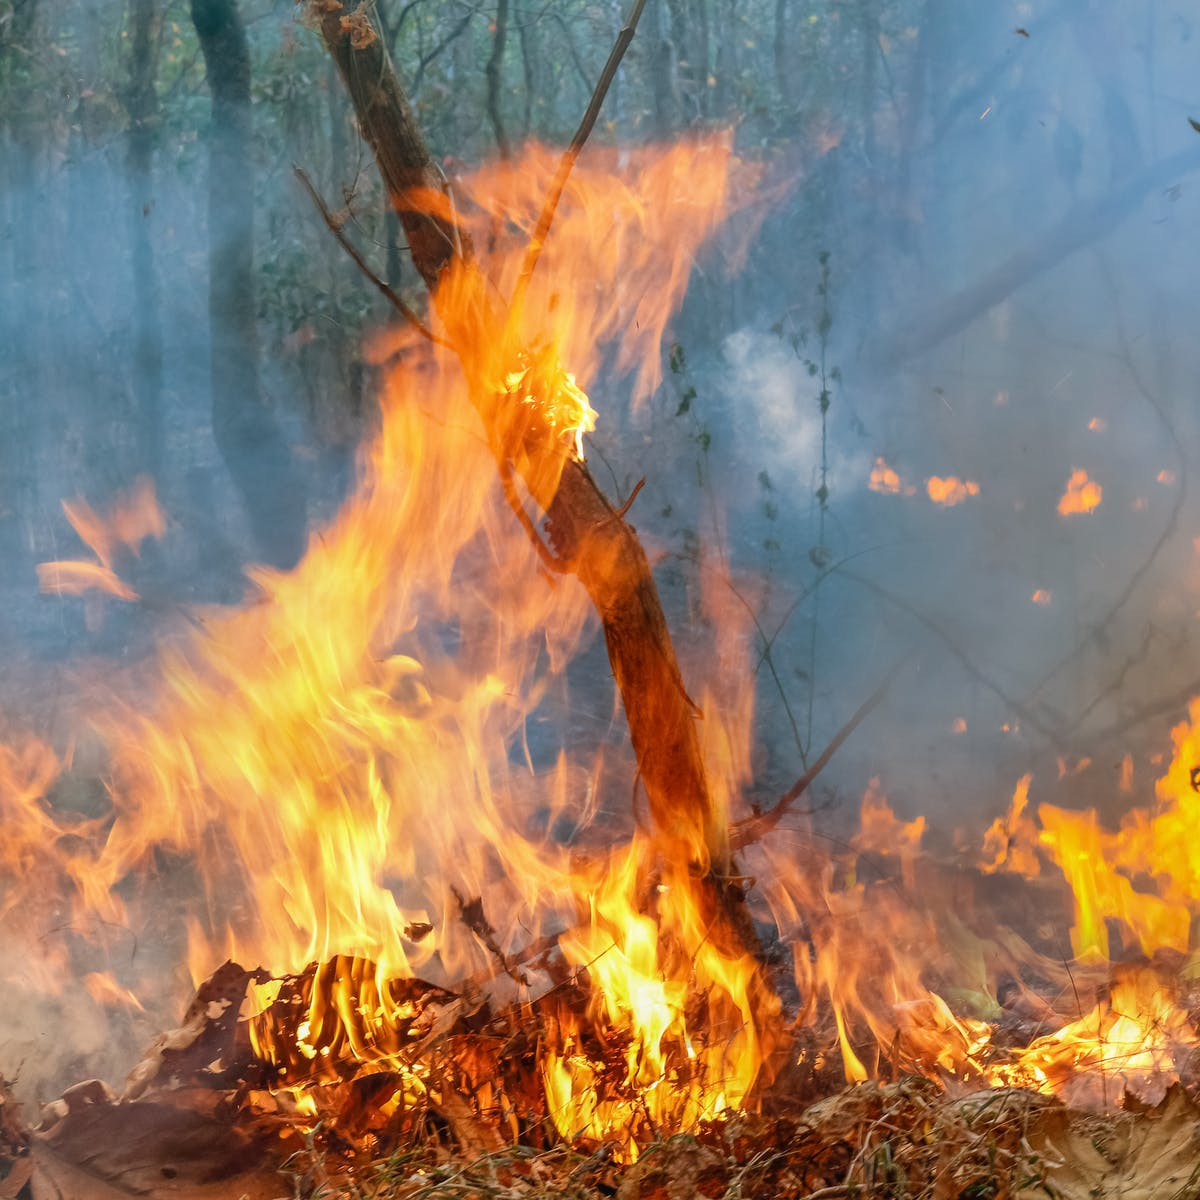 Amazon Fires What Will Happen If They Keep Burning